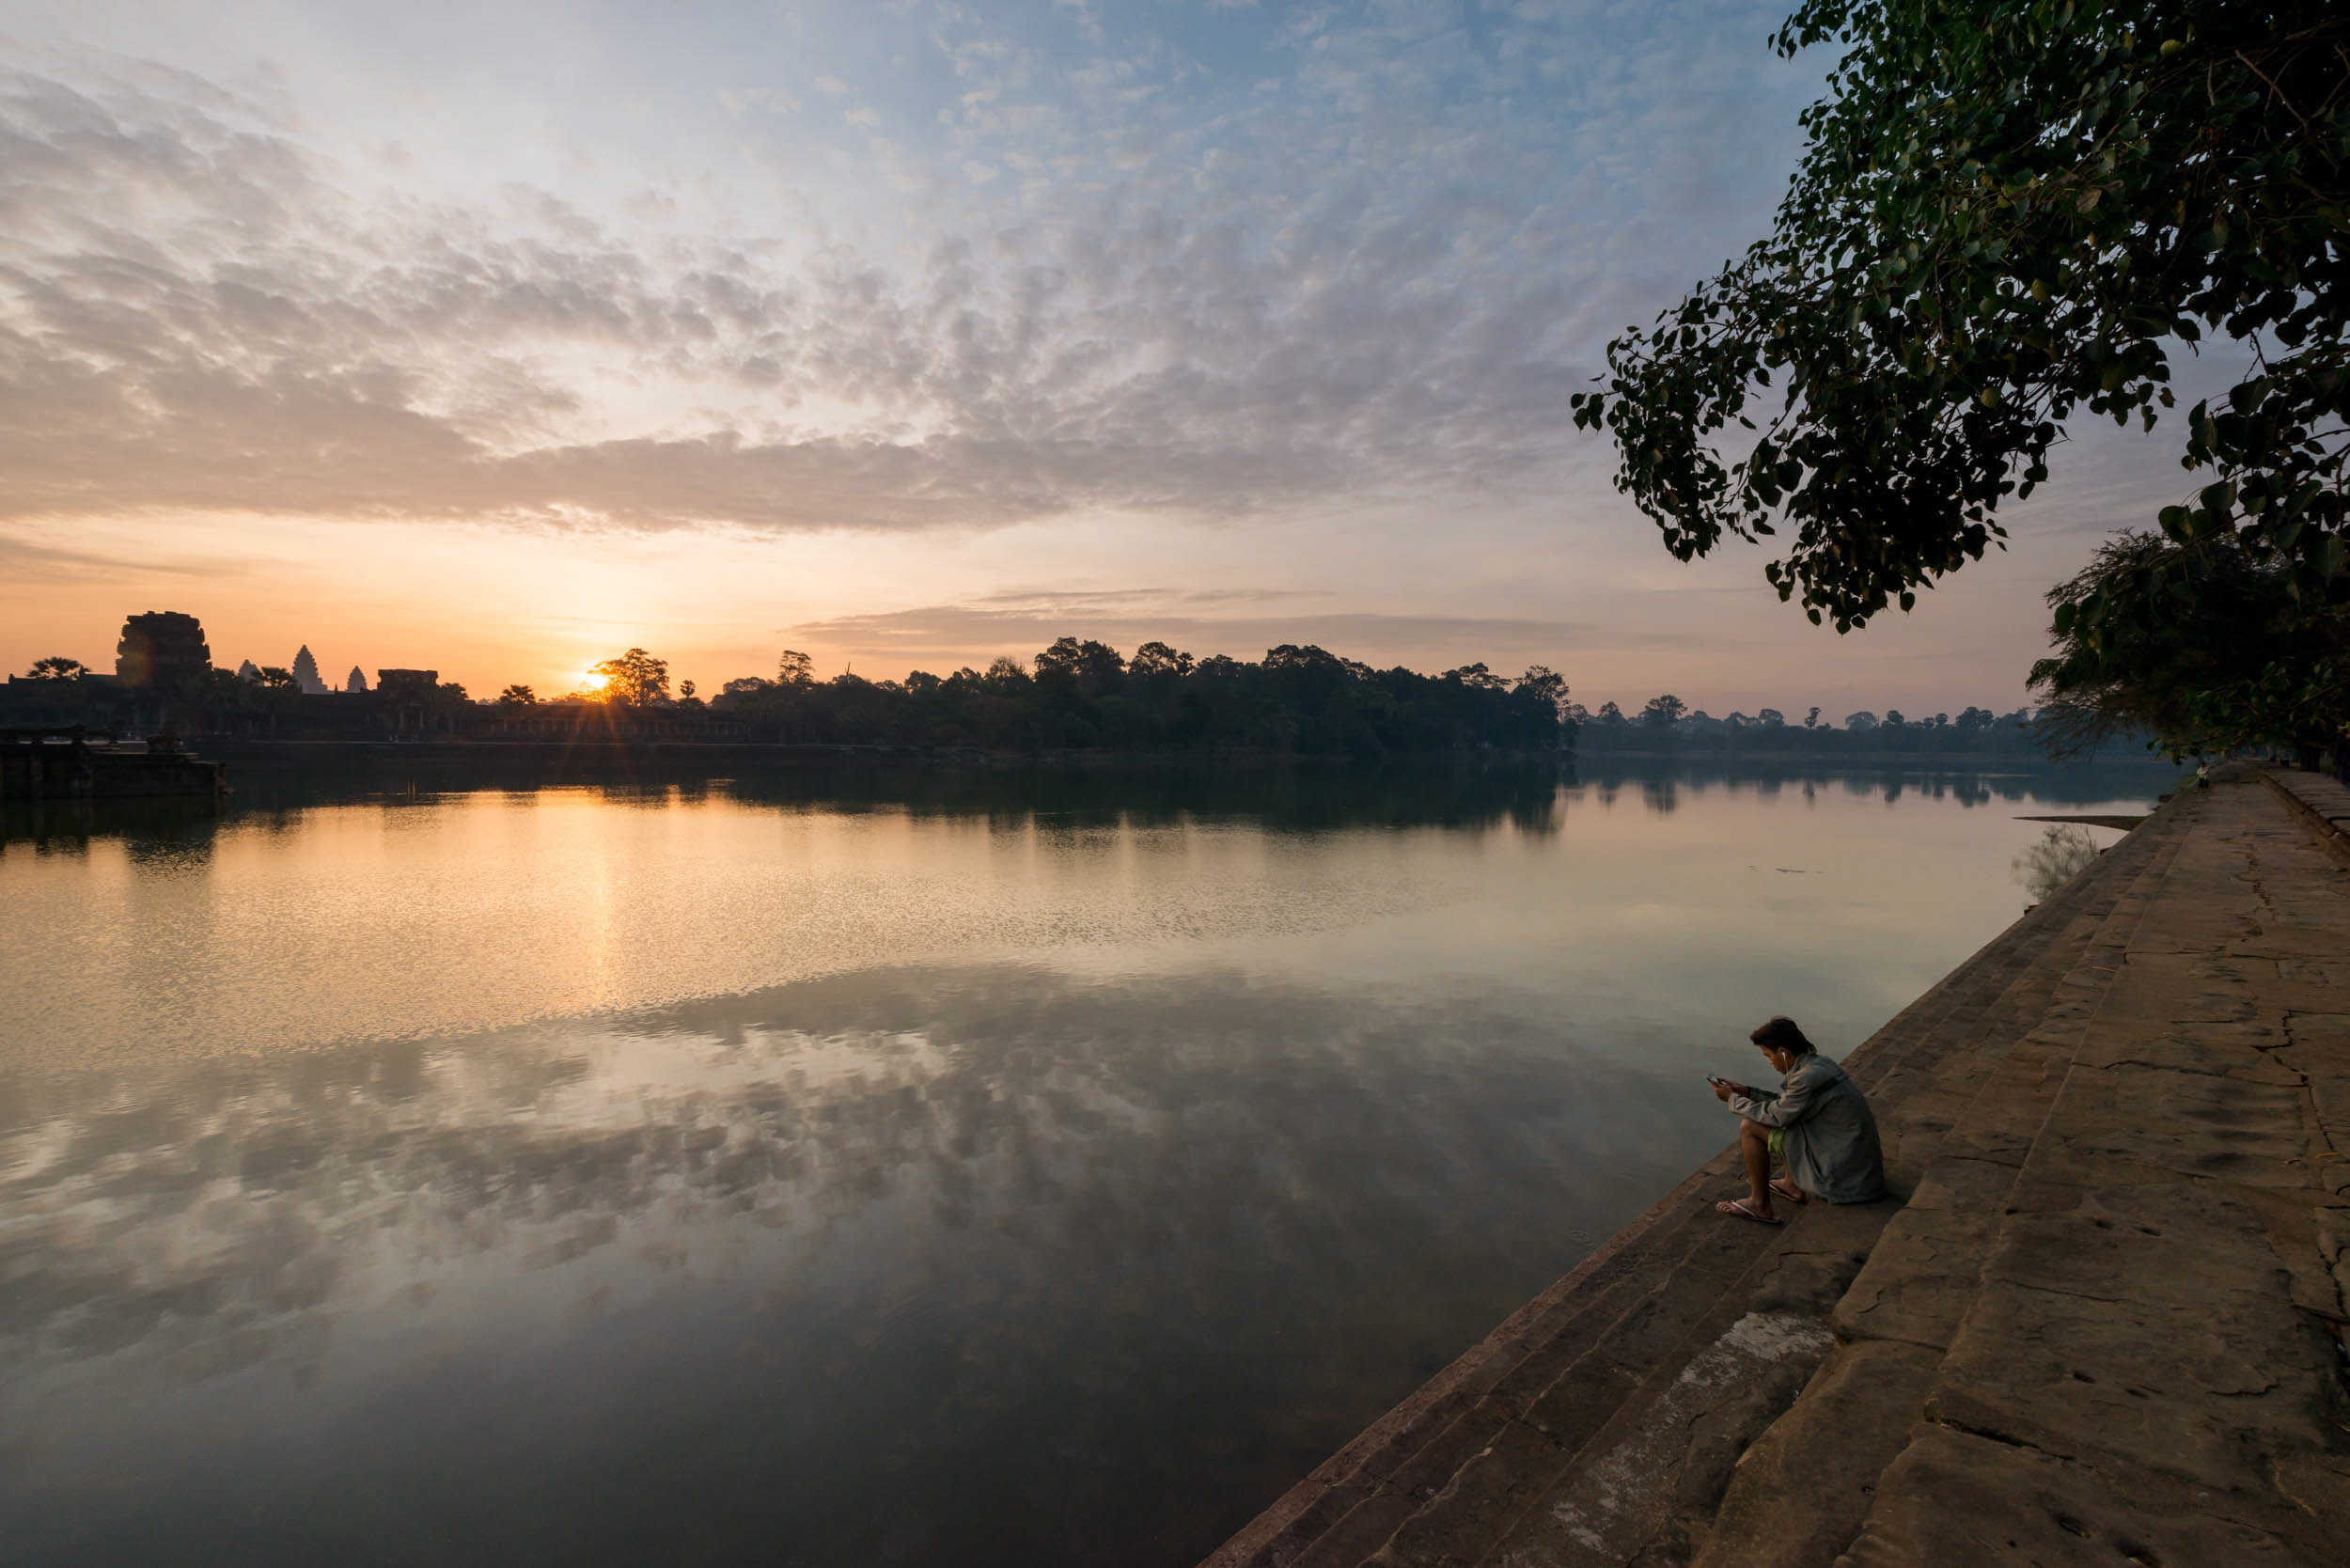 sunrise-river-travel-photography-angkor-siem-reap-cambodia